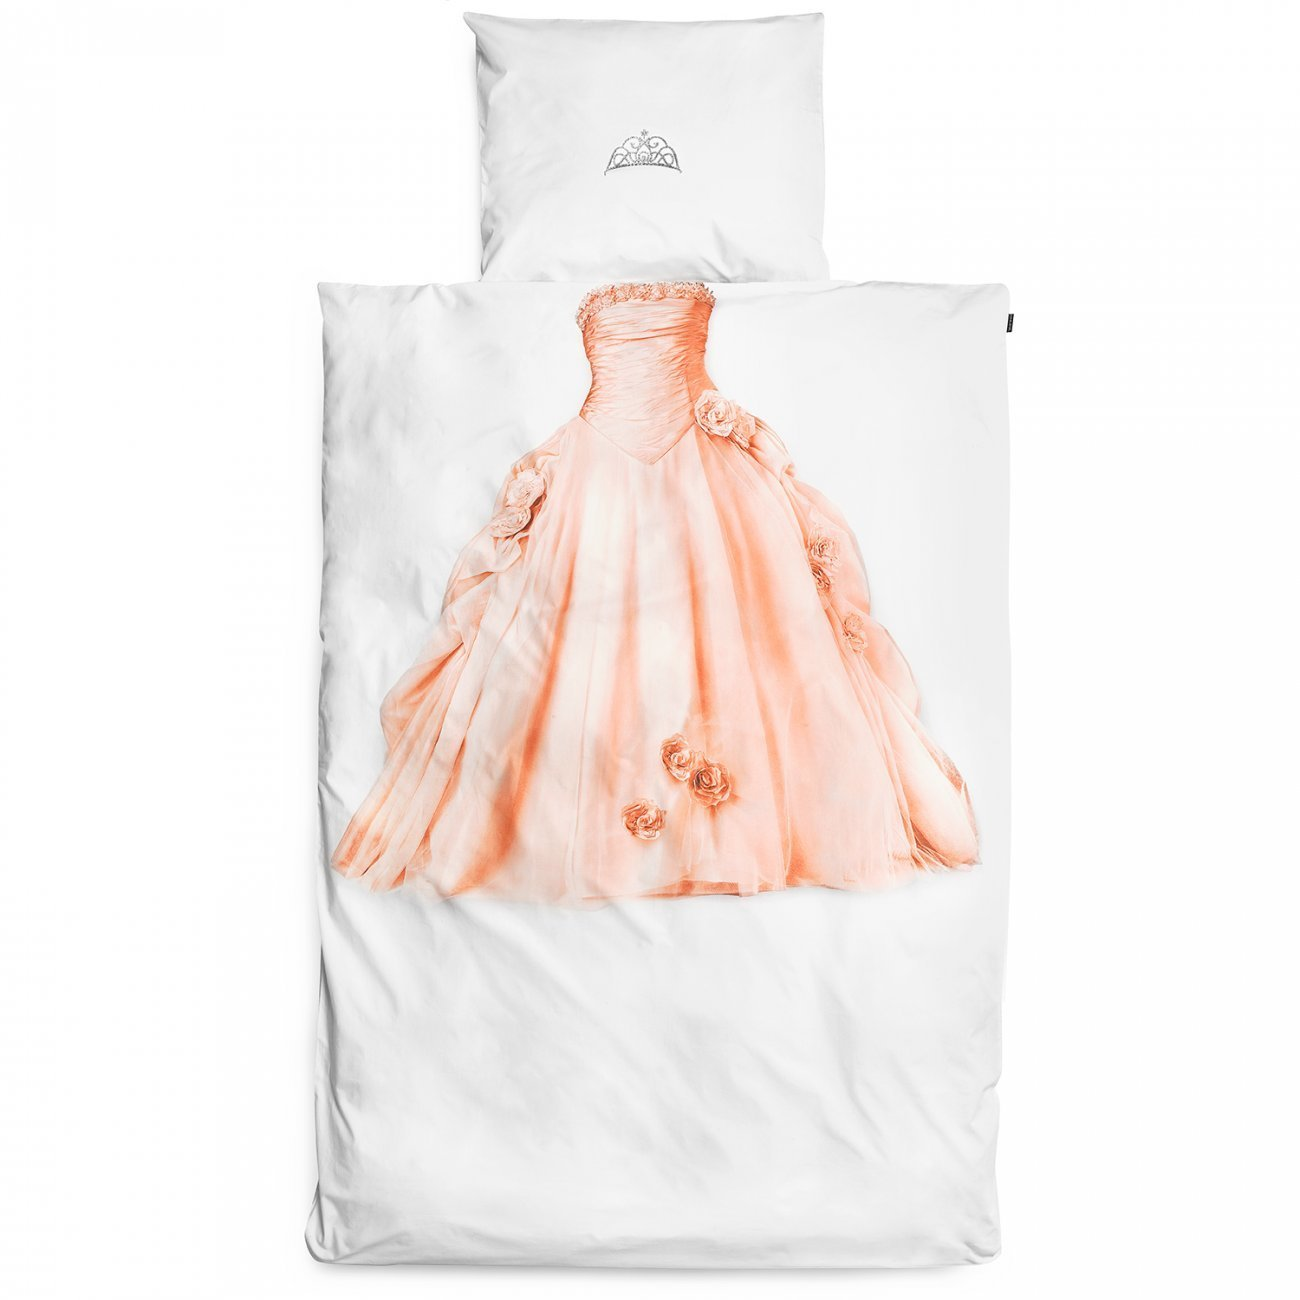 Snurk Princess Duvet Cover & Pillowcase Pink